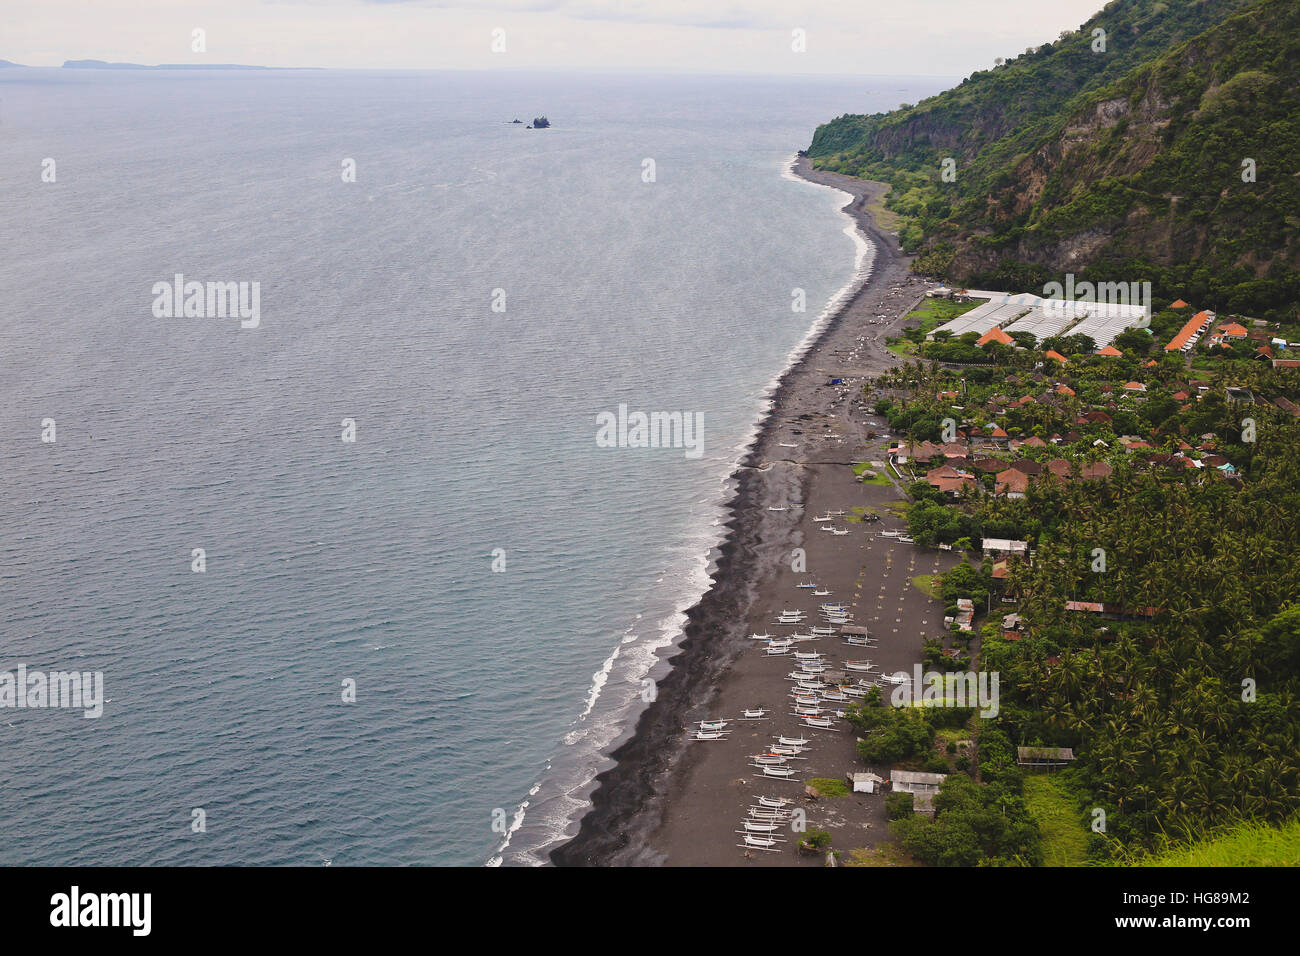 High angel view of shore against mountain - Stock Image